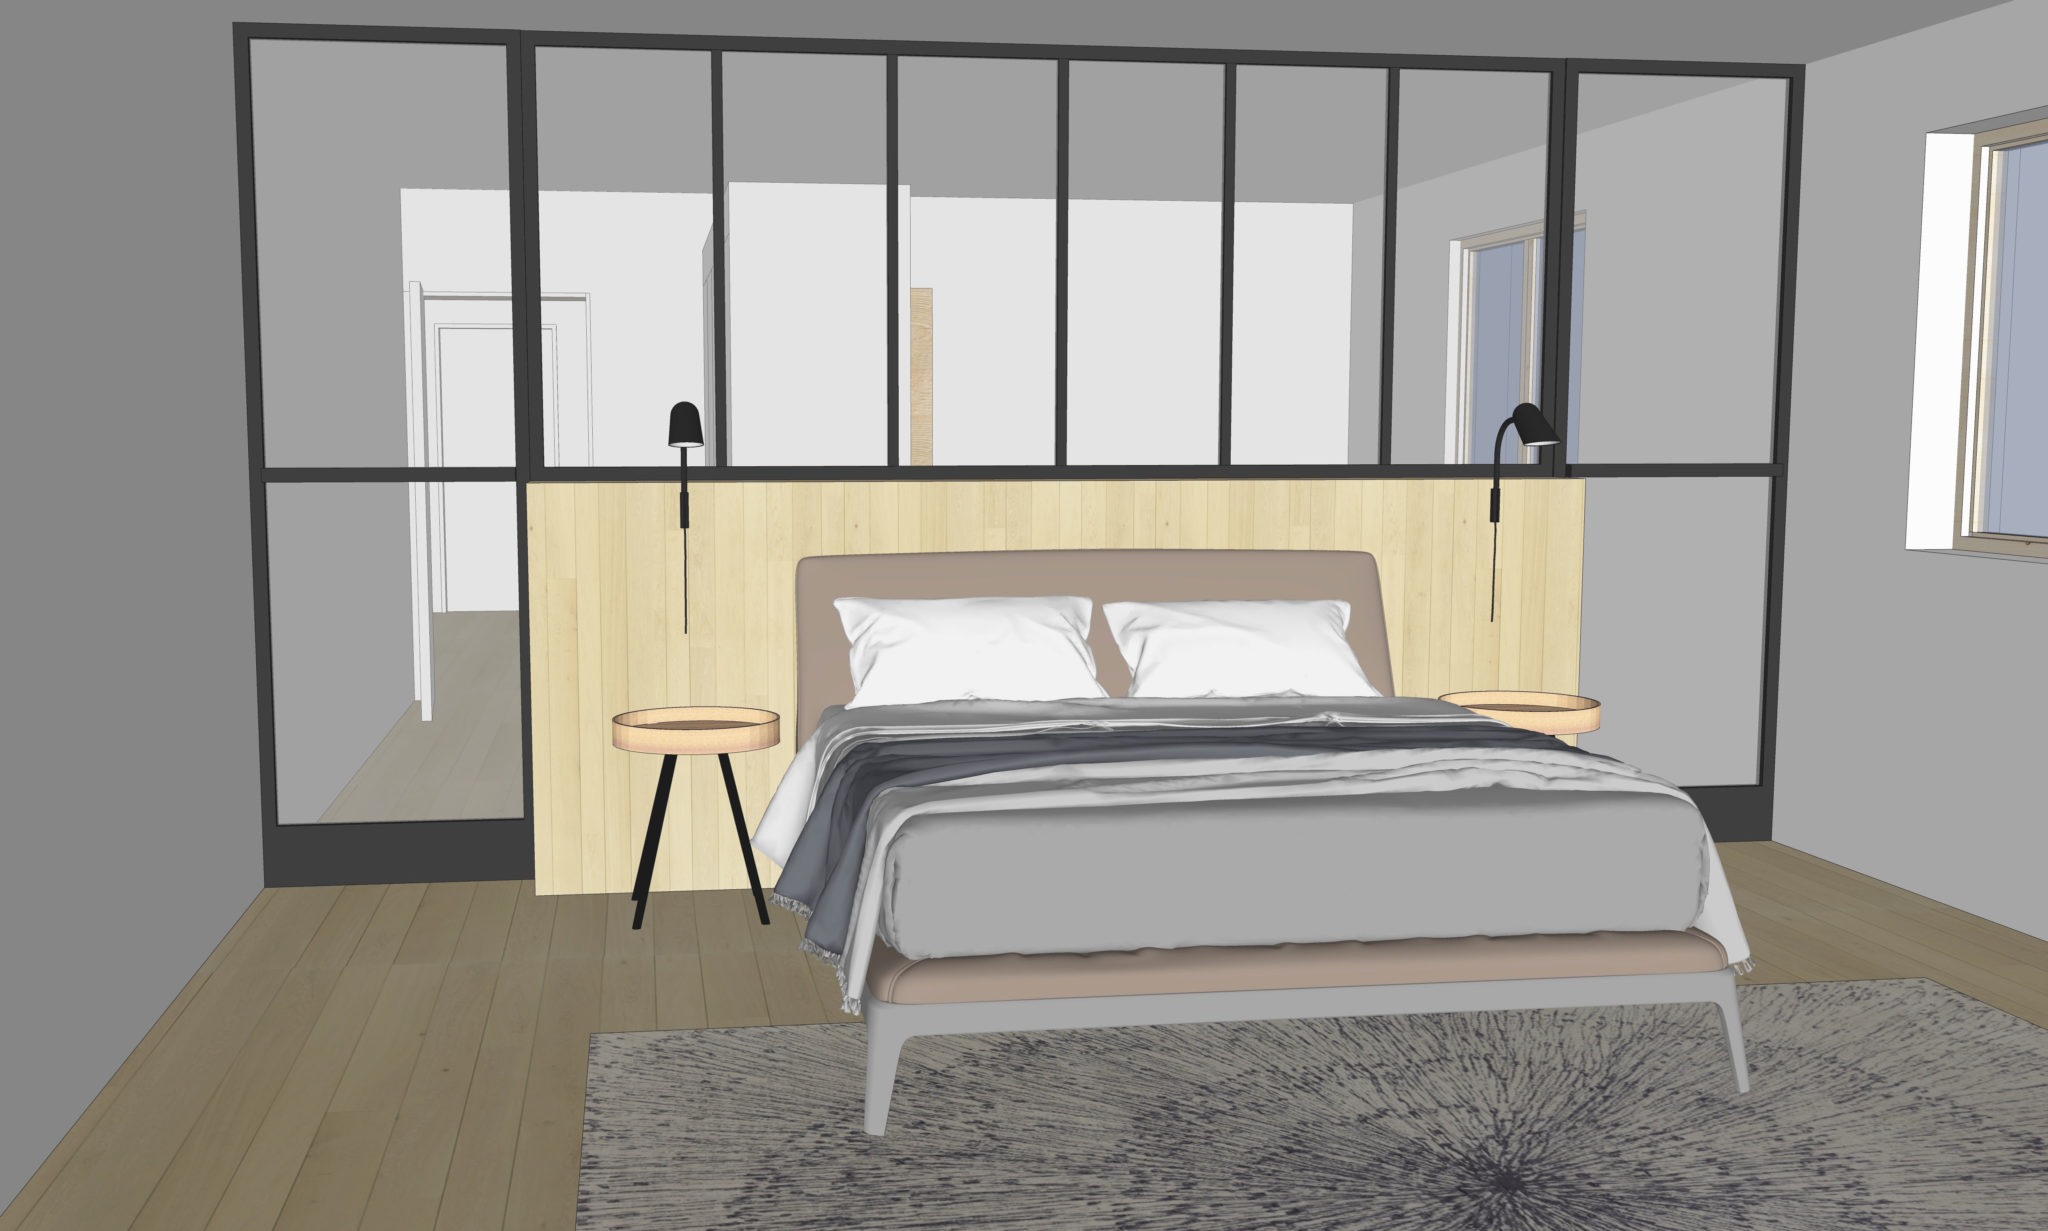 Projet S&G – Croquis chambre